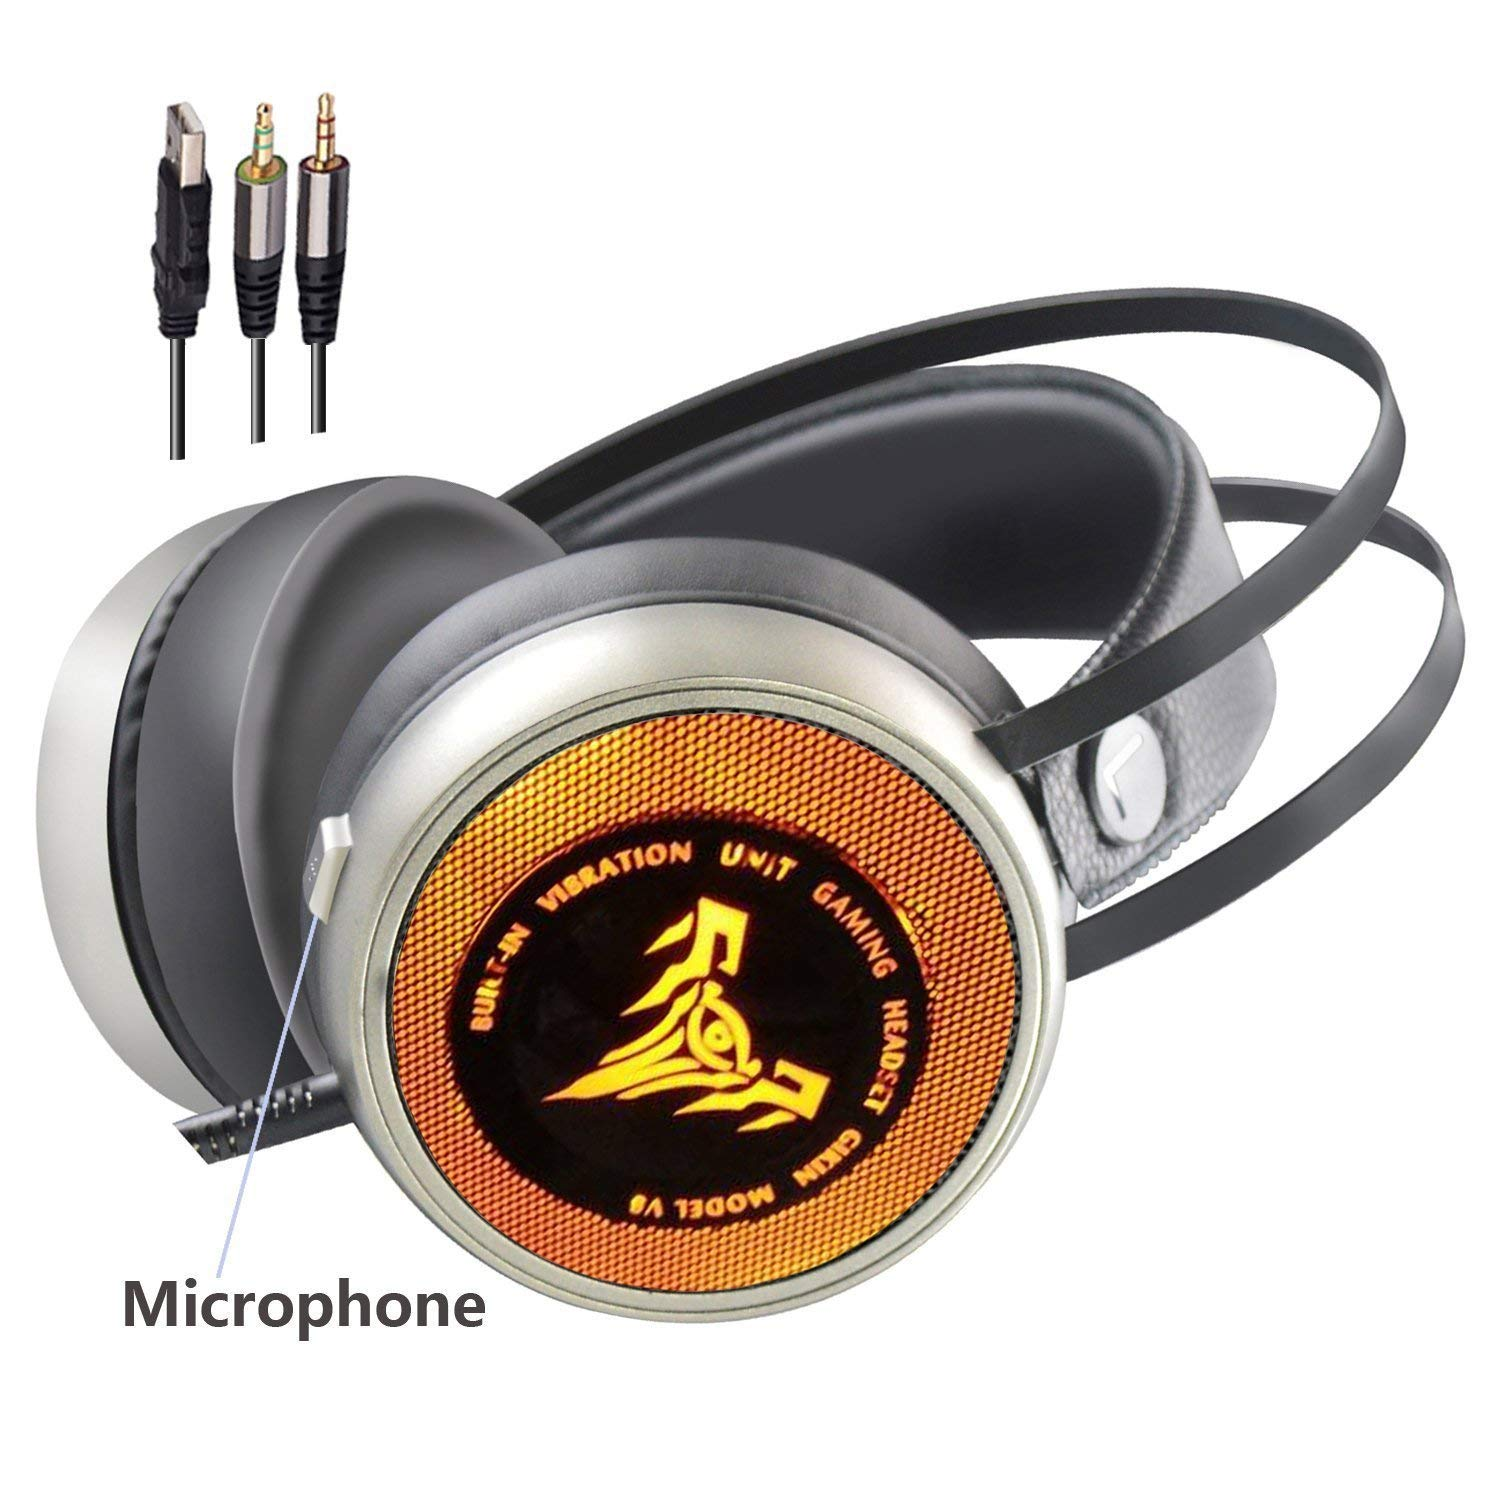 yan Headphones Gaming Glowing vibration headset Internet cafes Wired headset for PC Computer Game with Noise Cancelling & Volume Control